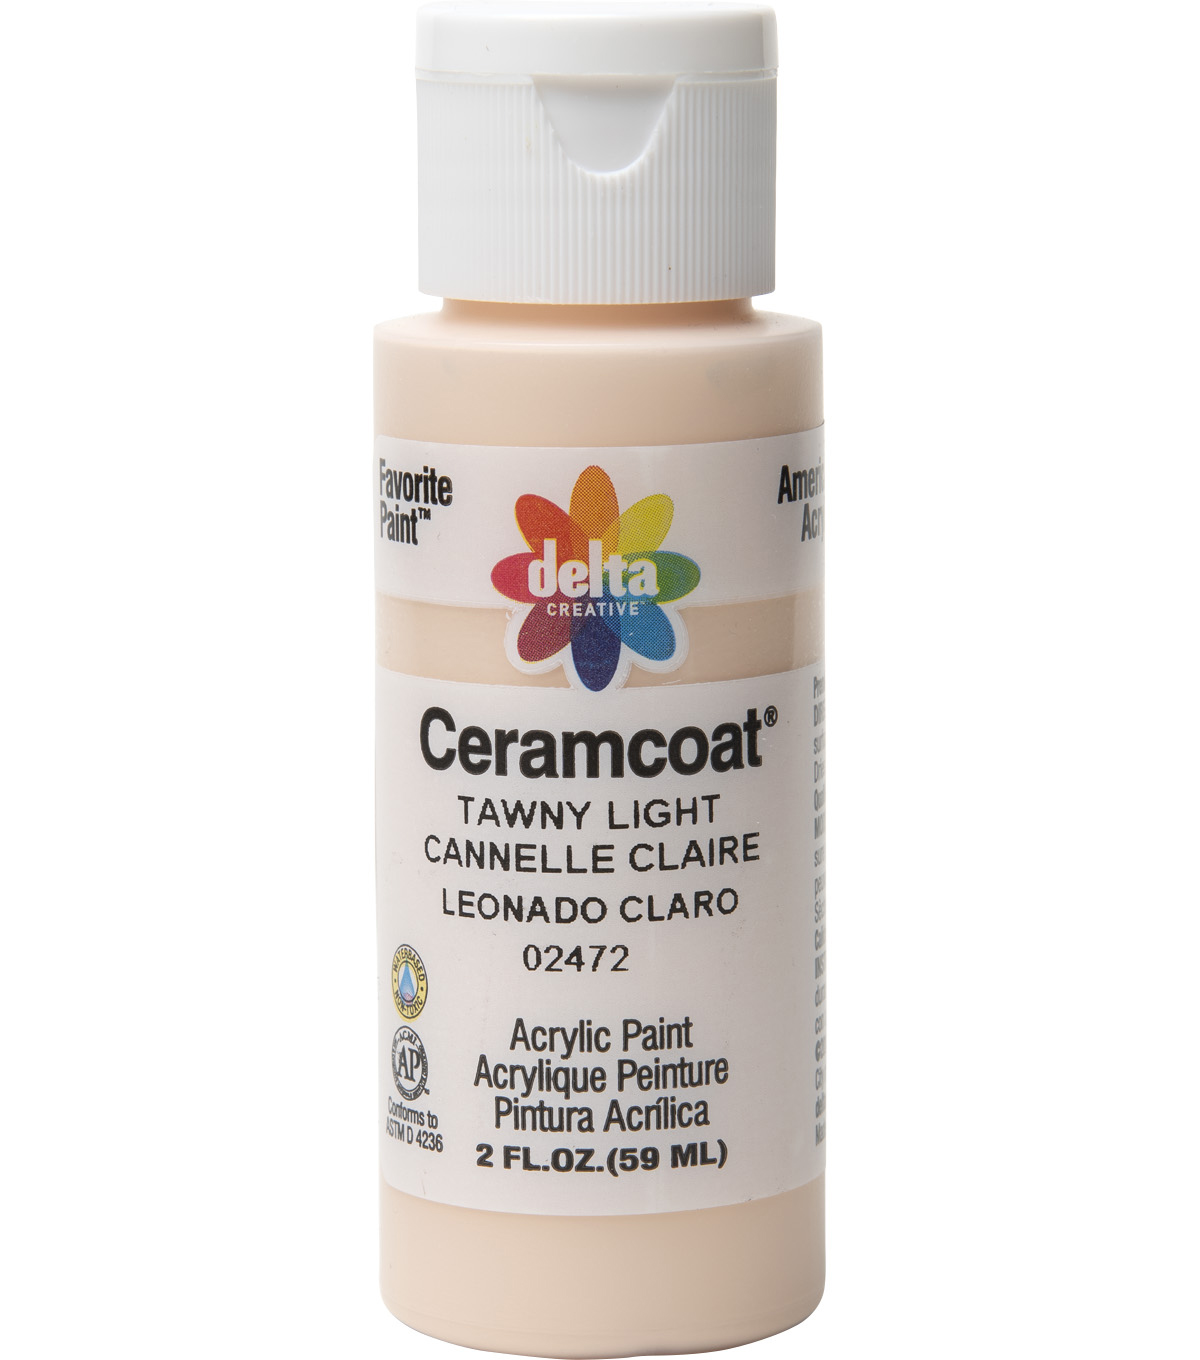 Delta Ceramcoat Acrylic Paint 2 oz, Santa\u0027s Flesh